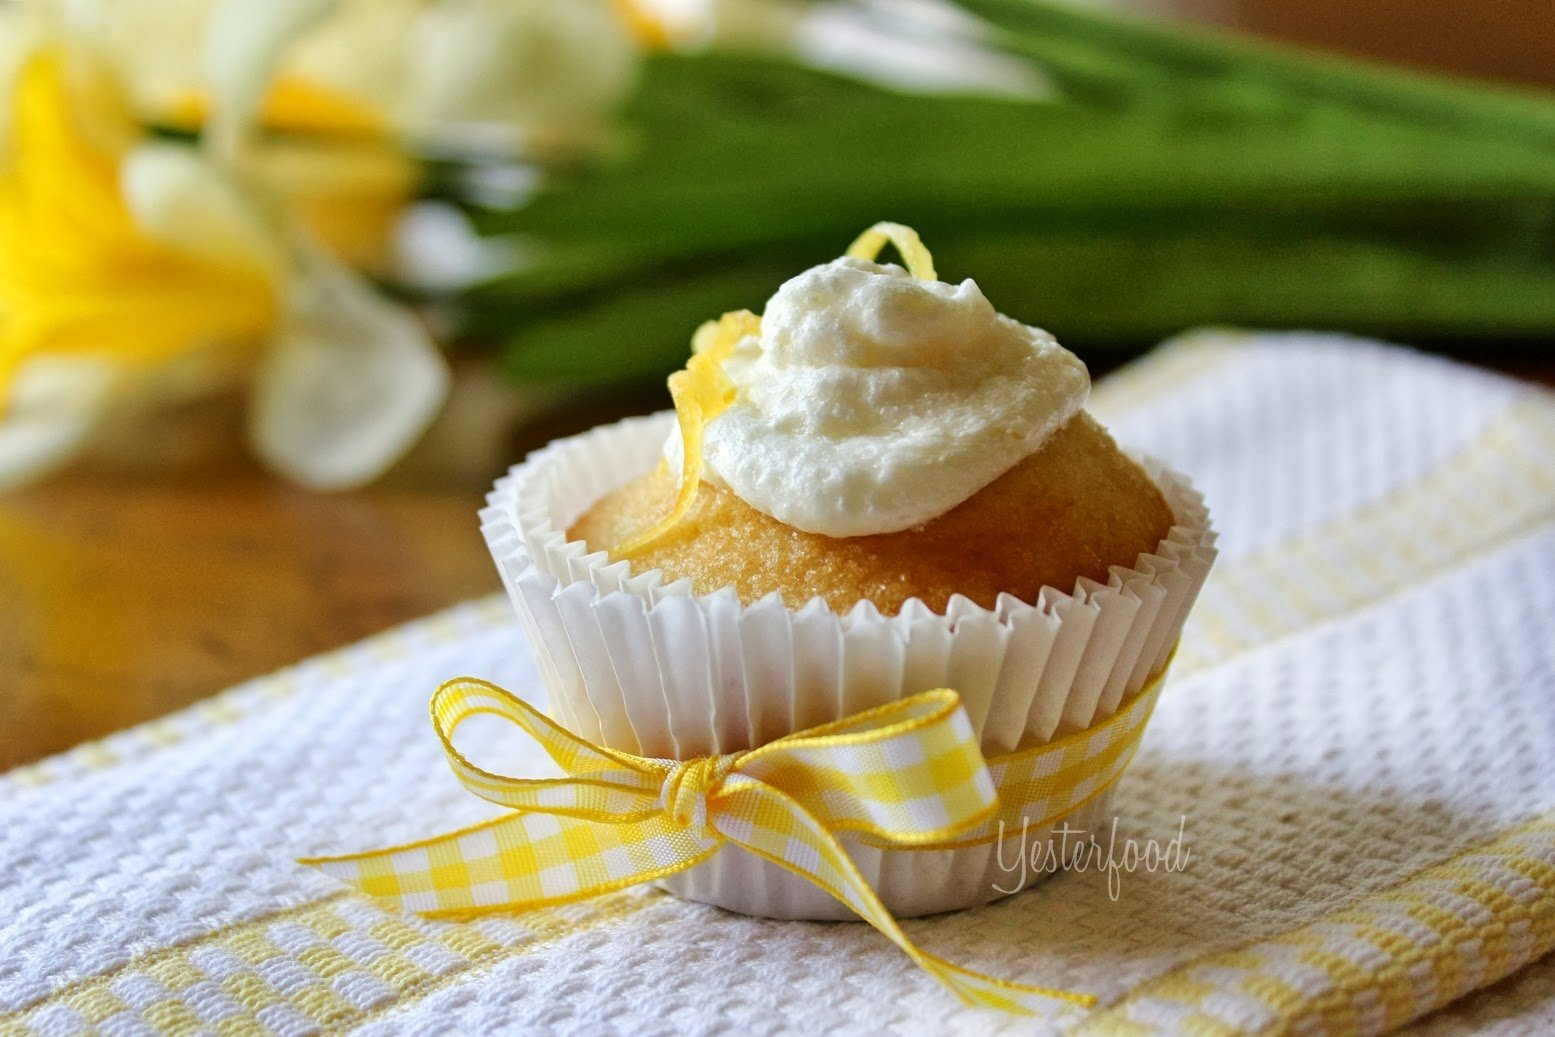 Lemon Cupcakes by Yesterfood